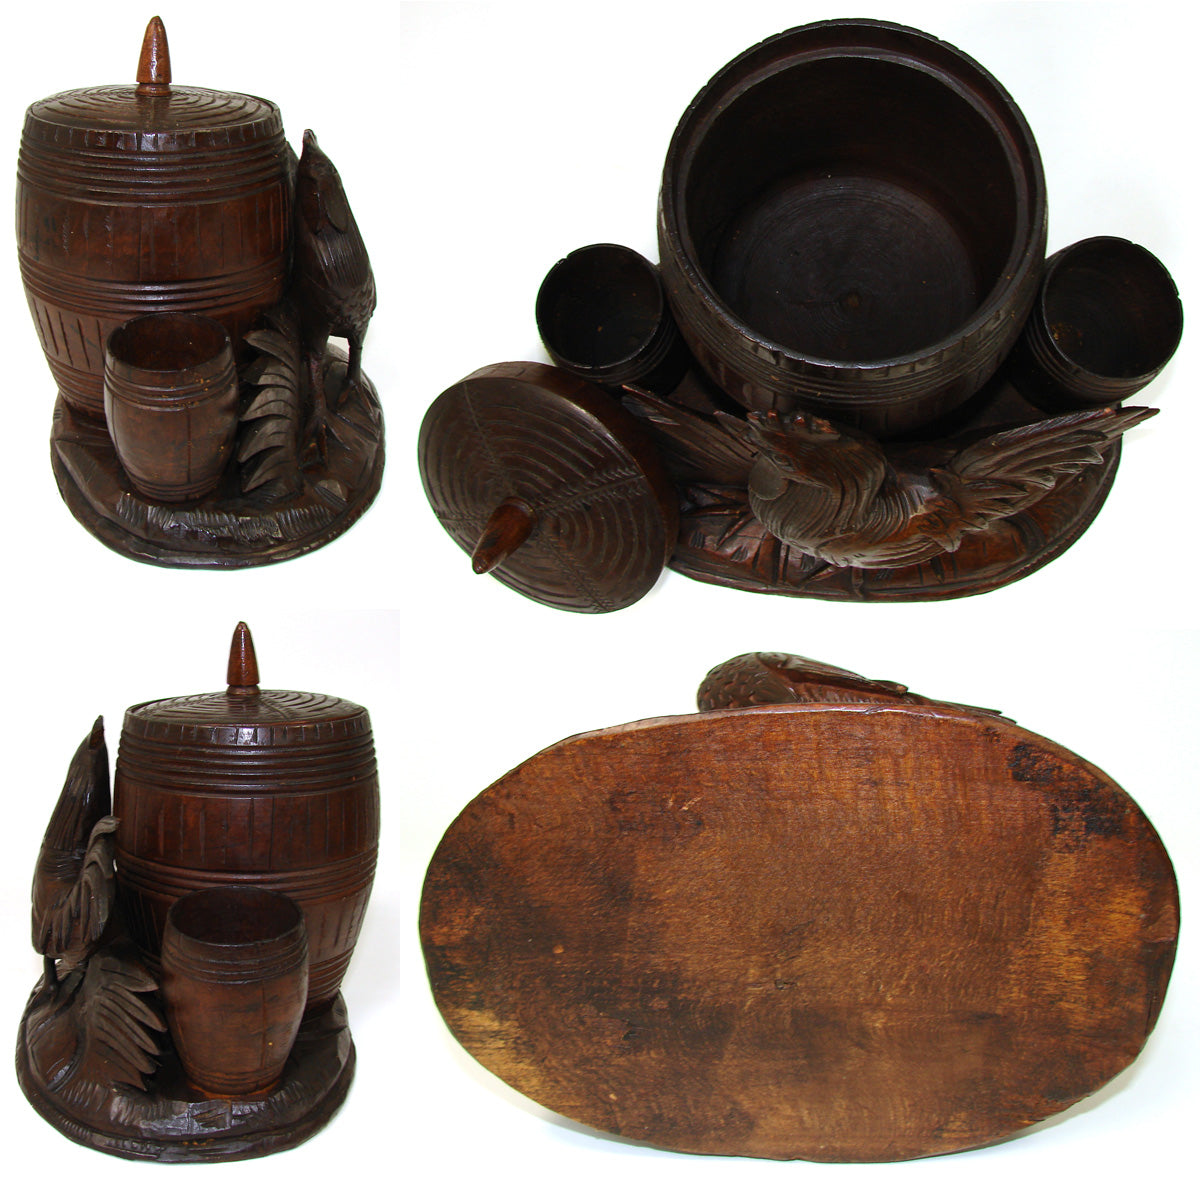 Antique Black Forest Carved Smoker's Stand, Tobacco & Match Barrels, Cock or Rooster Figure